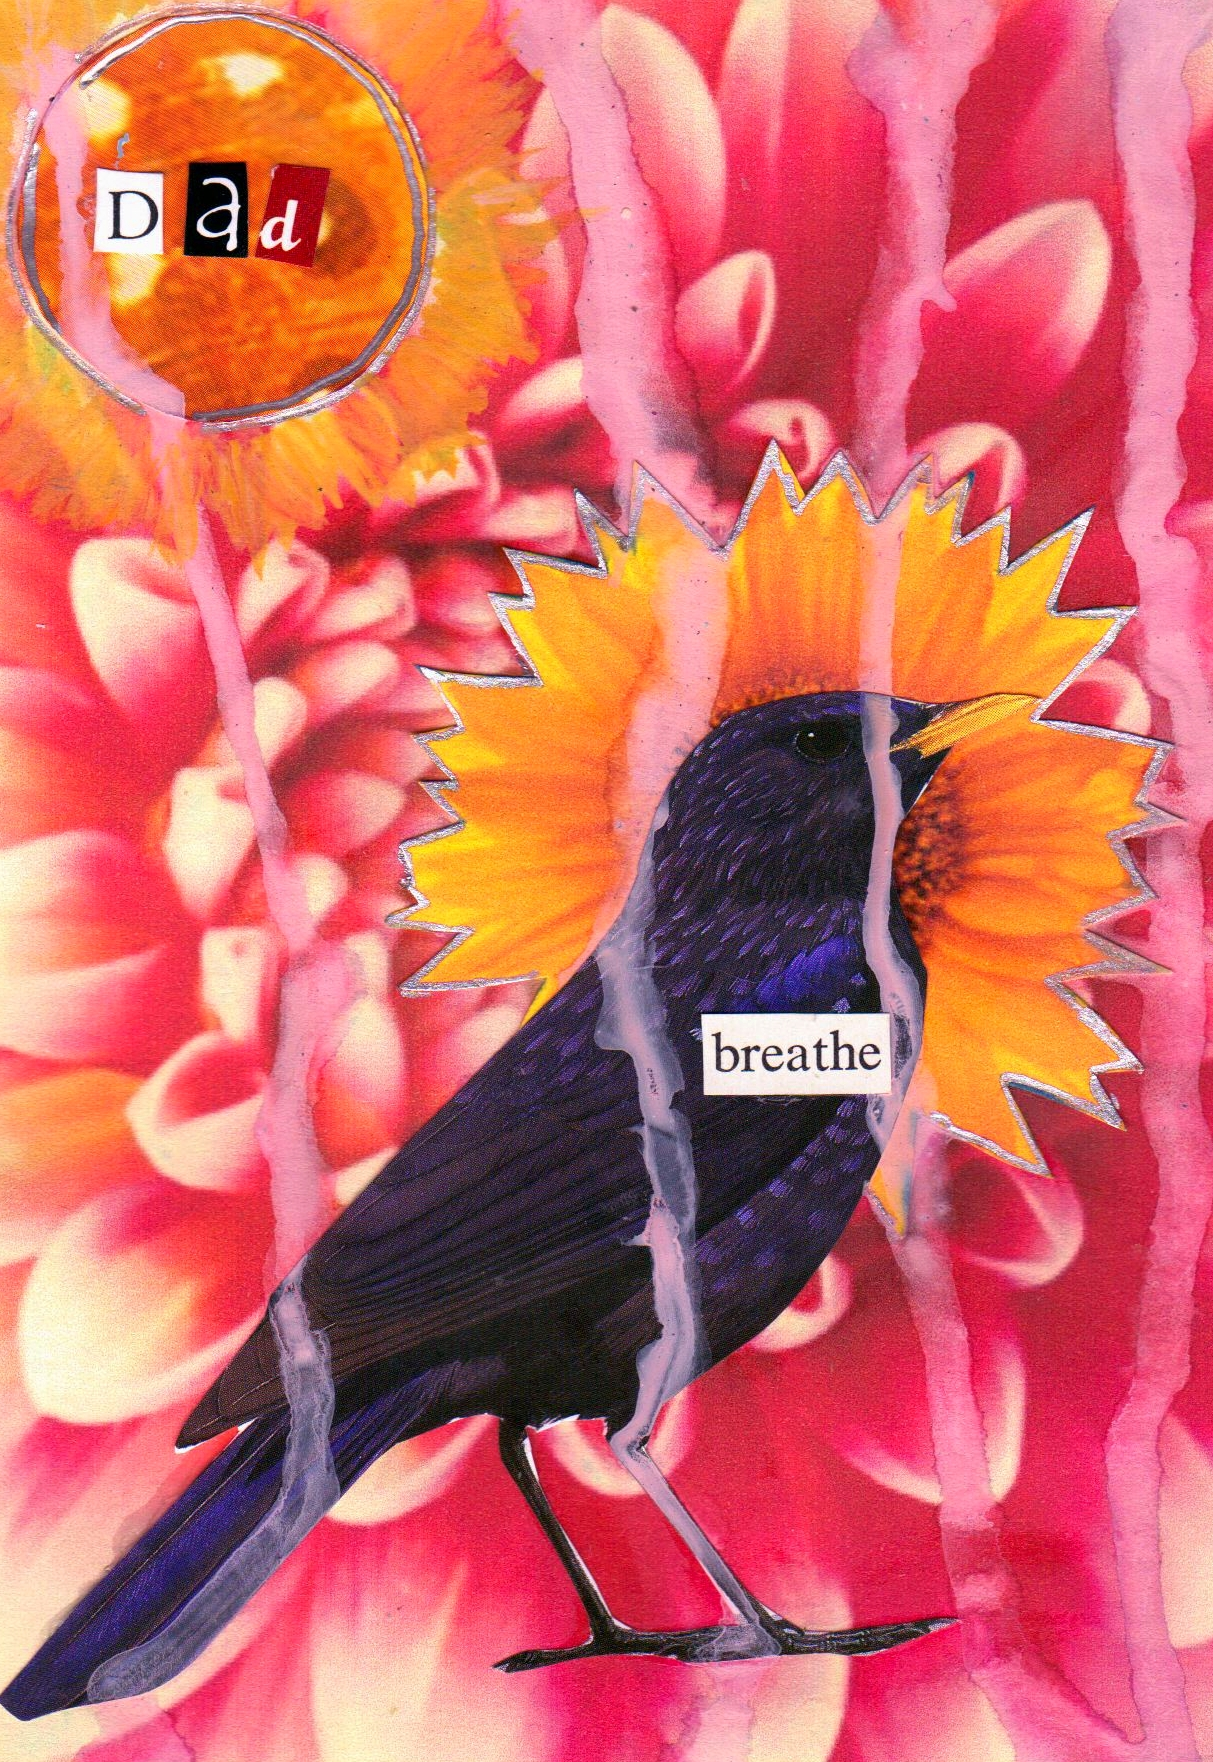 Breathing the Loss, mixed media collage by Courtney Putnam